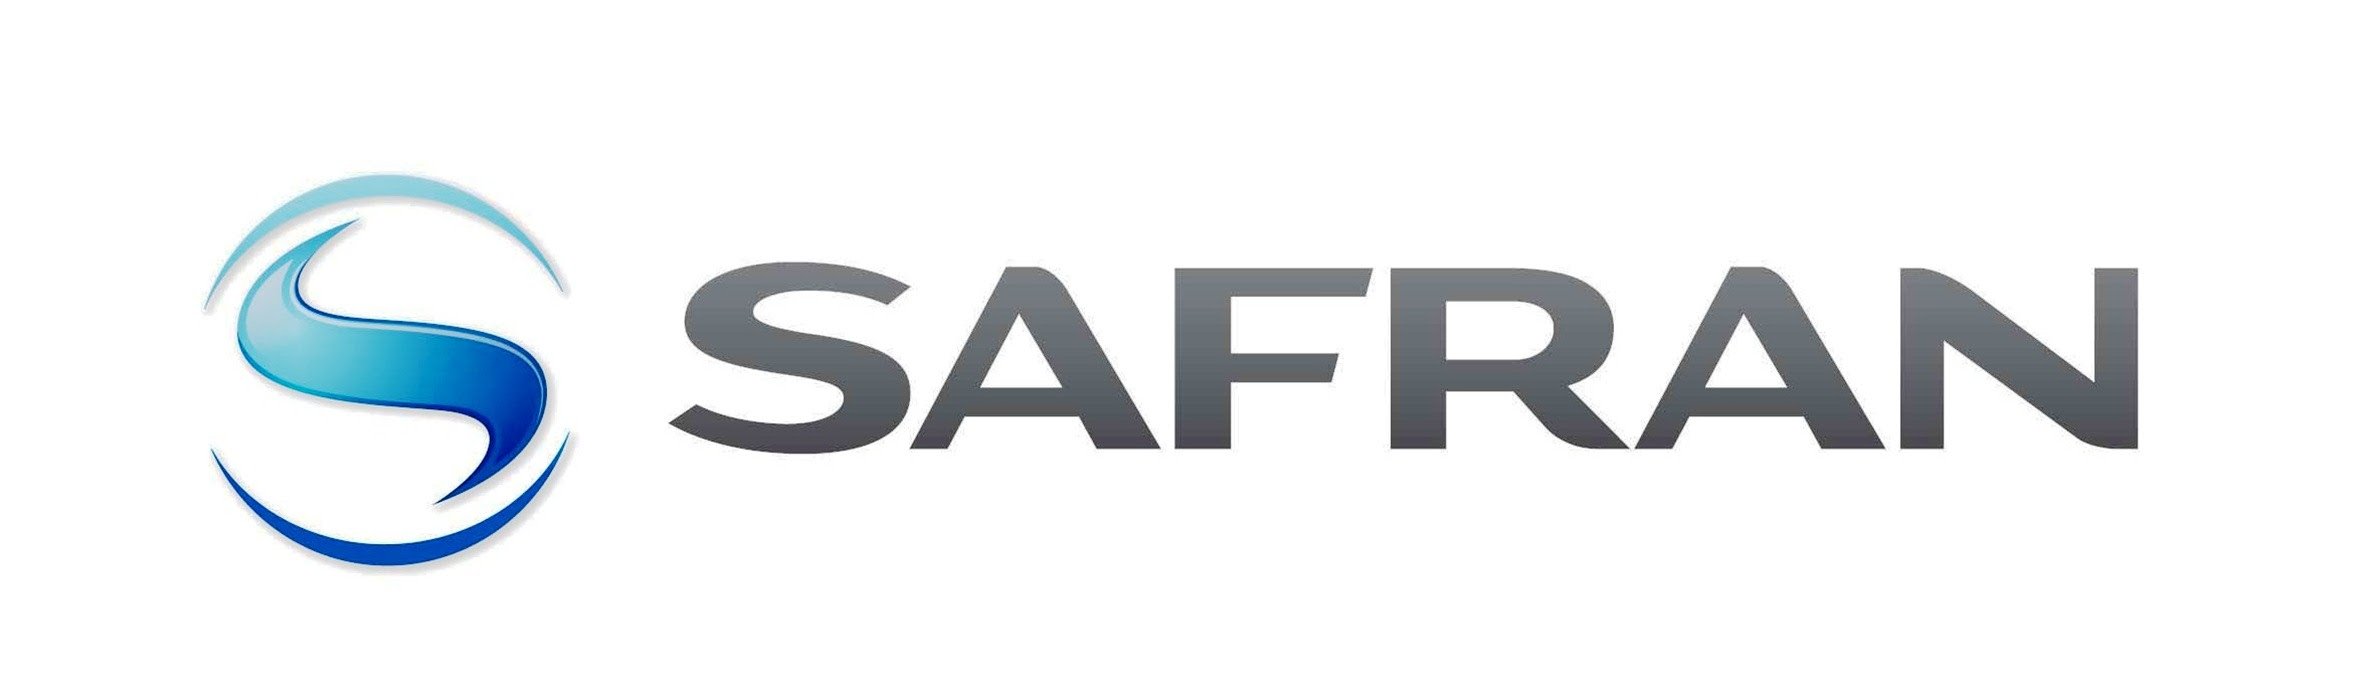 Image result for safran logo